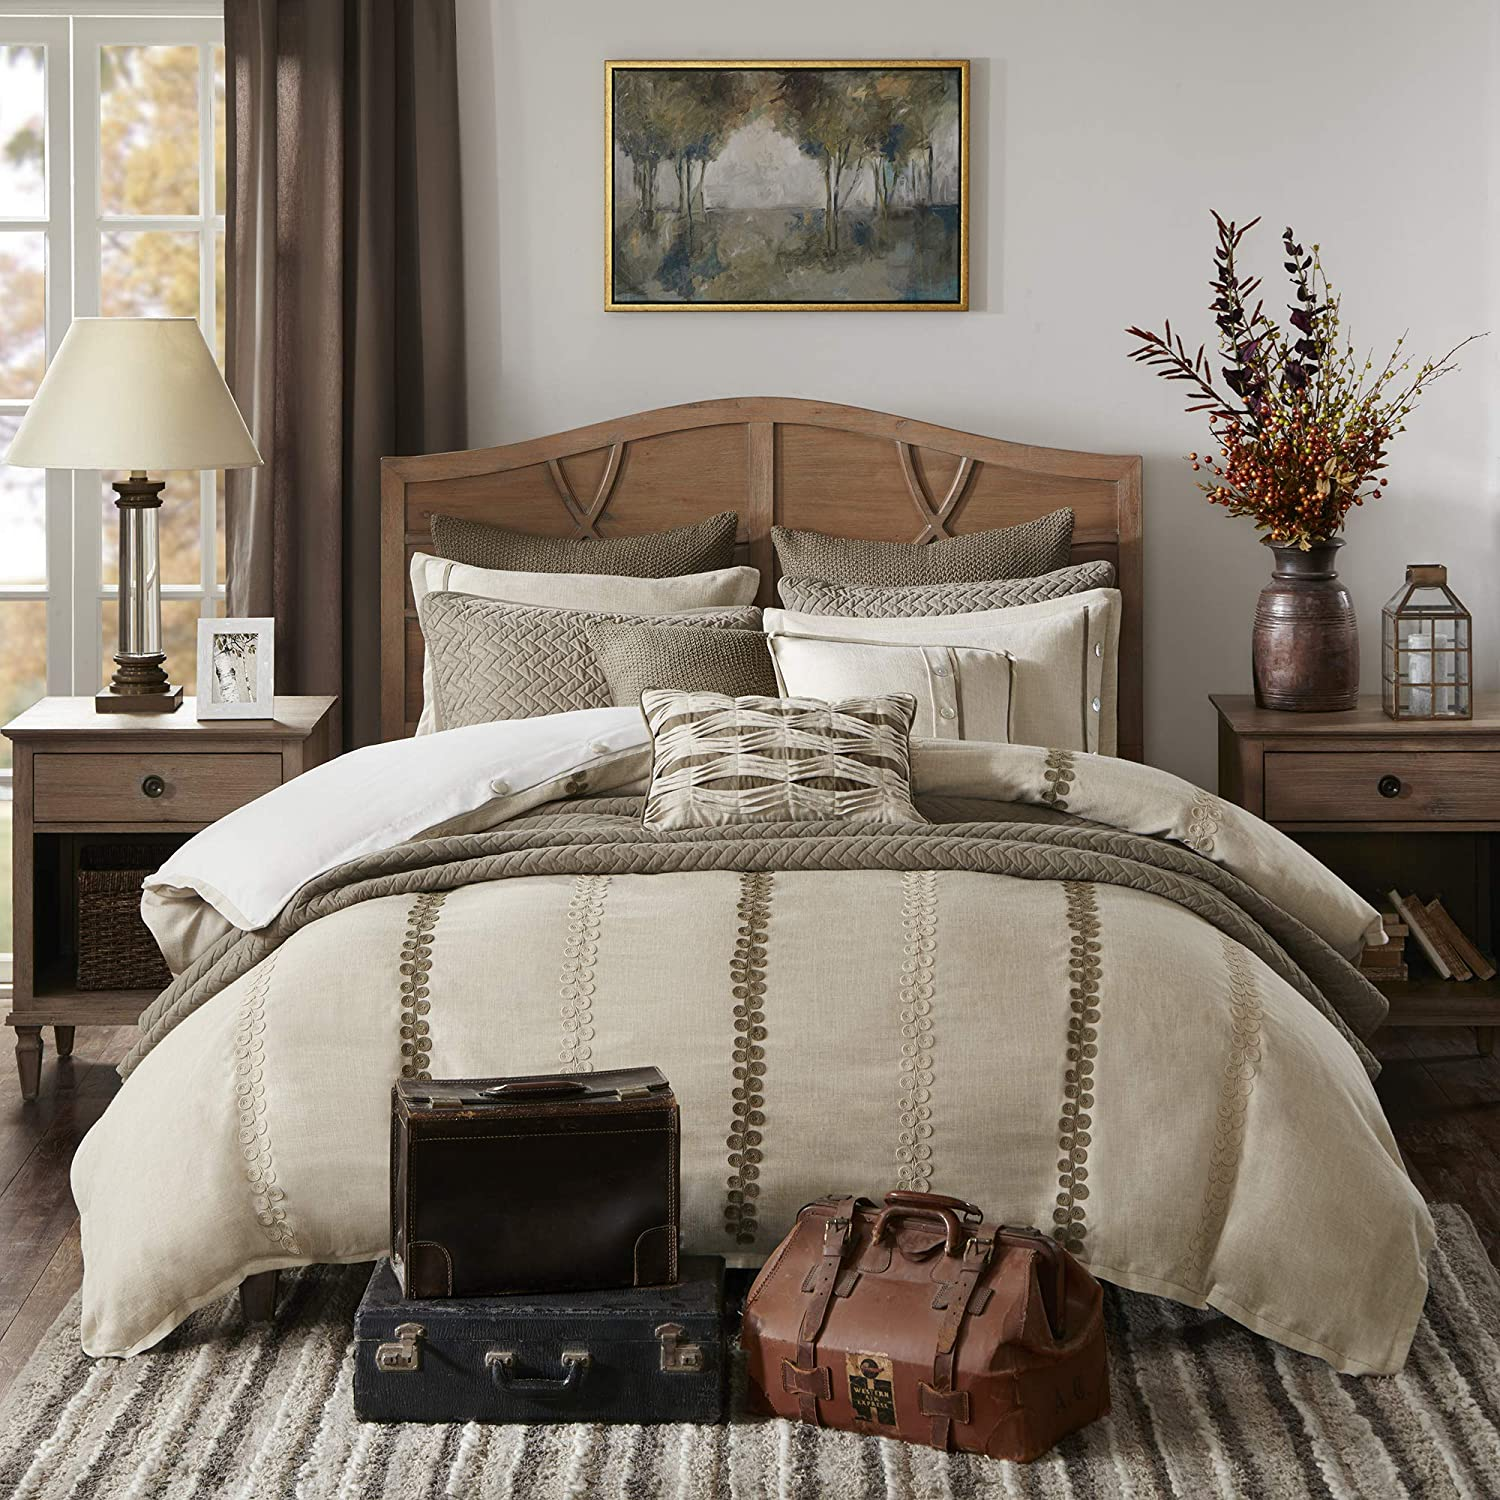 Madison Park Signature Chateau Queen Size Bed Comforter Duvet 2-In-1 Set Bed In A Bag - Taupe , Soutache Cord Embroidery – 8 Piece Bedding Sets – Faux Linen Bedroom Comforters